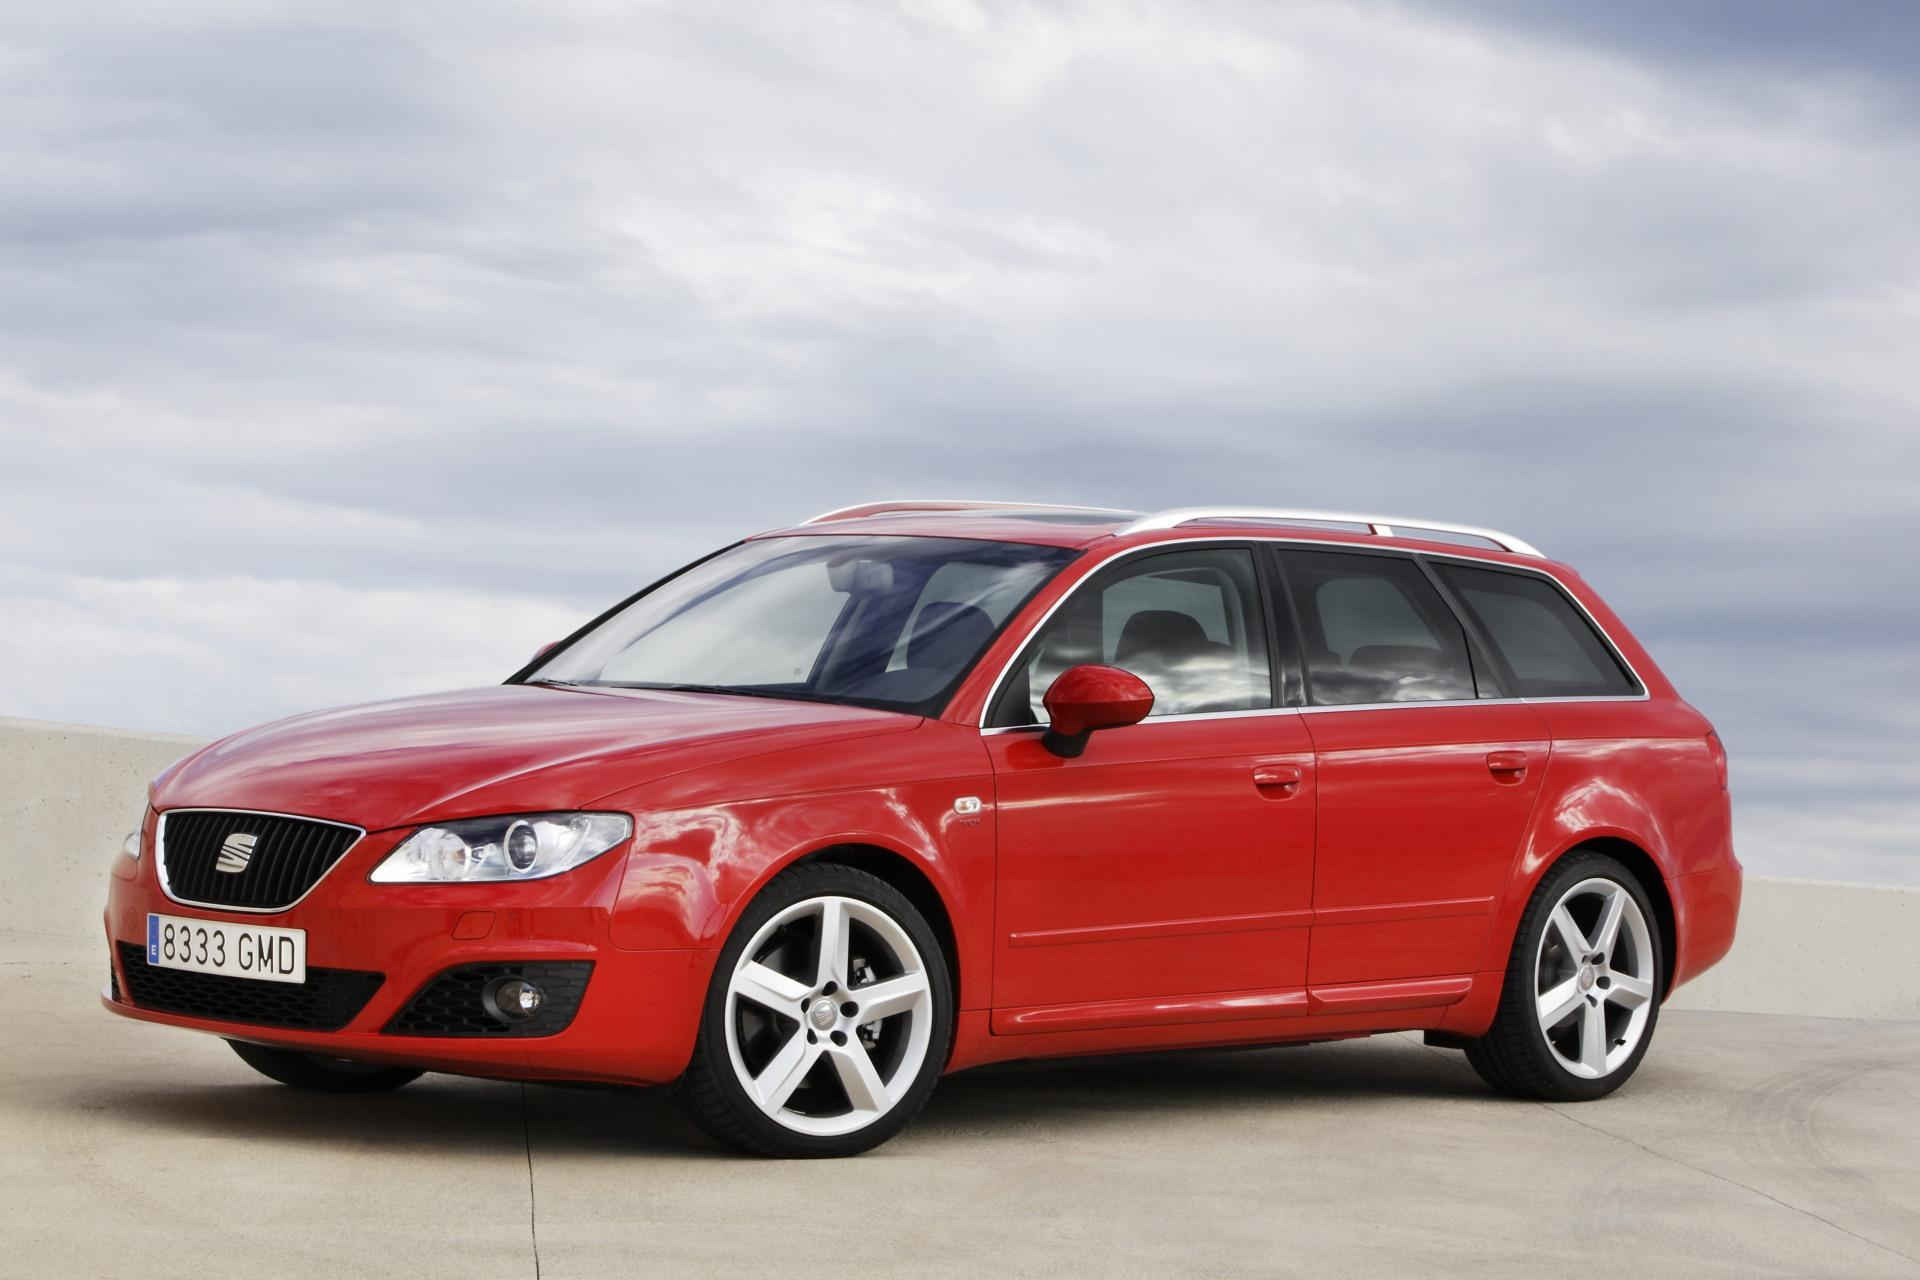 2010 Seat Exeo St News And Information Conceptcarz Com